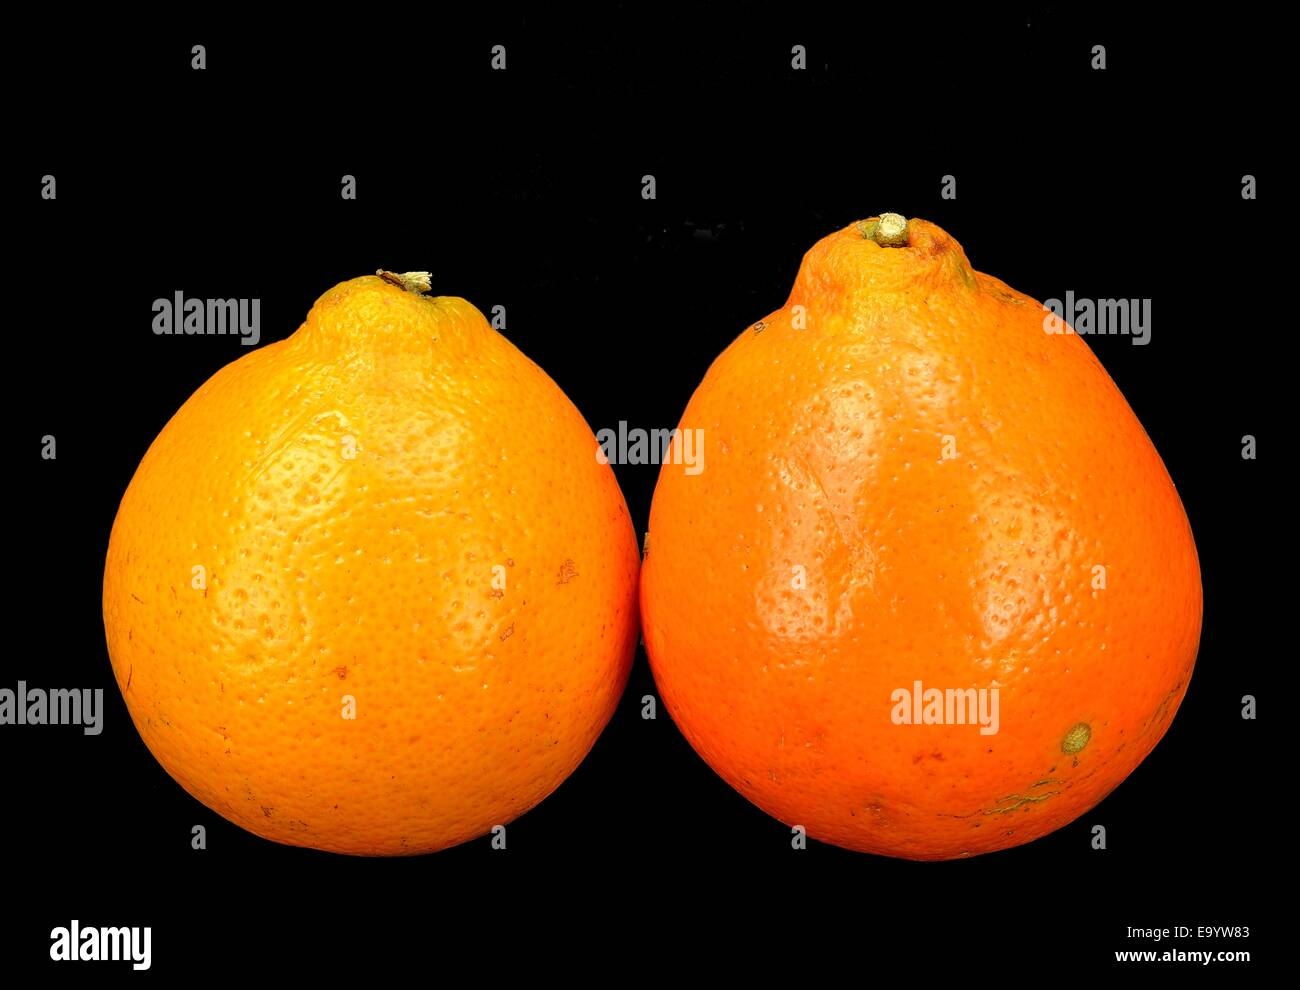 Two Mineola Tangelo (Honey Bell) oranges on a black background. - Stock Image